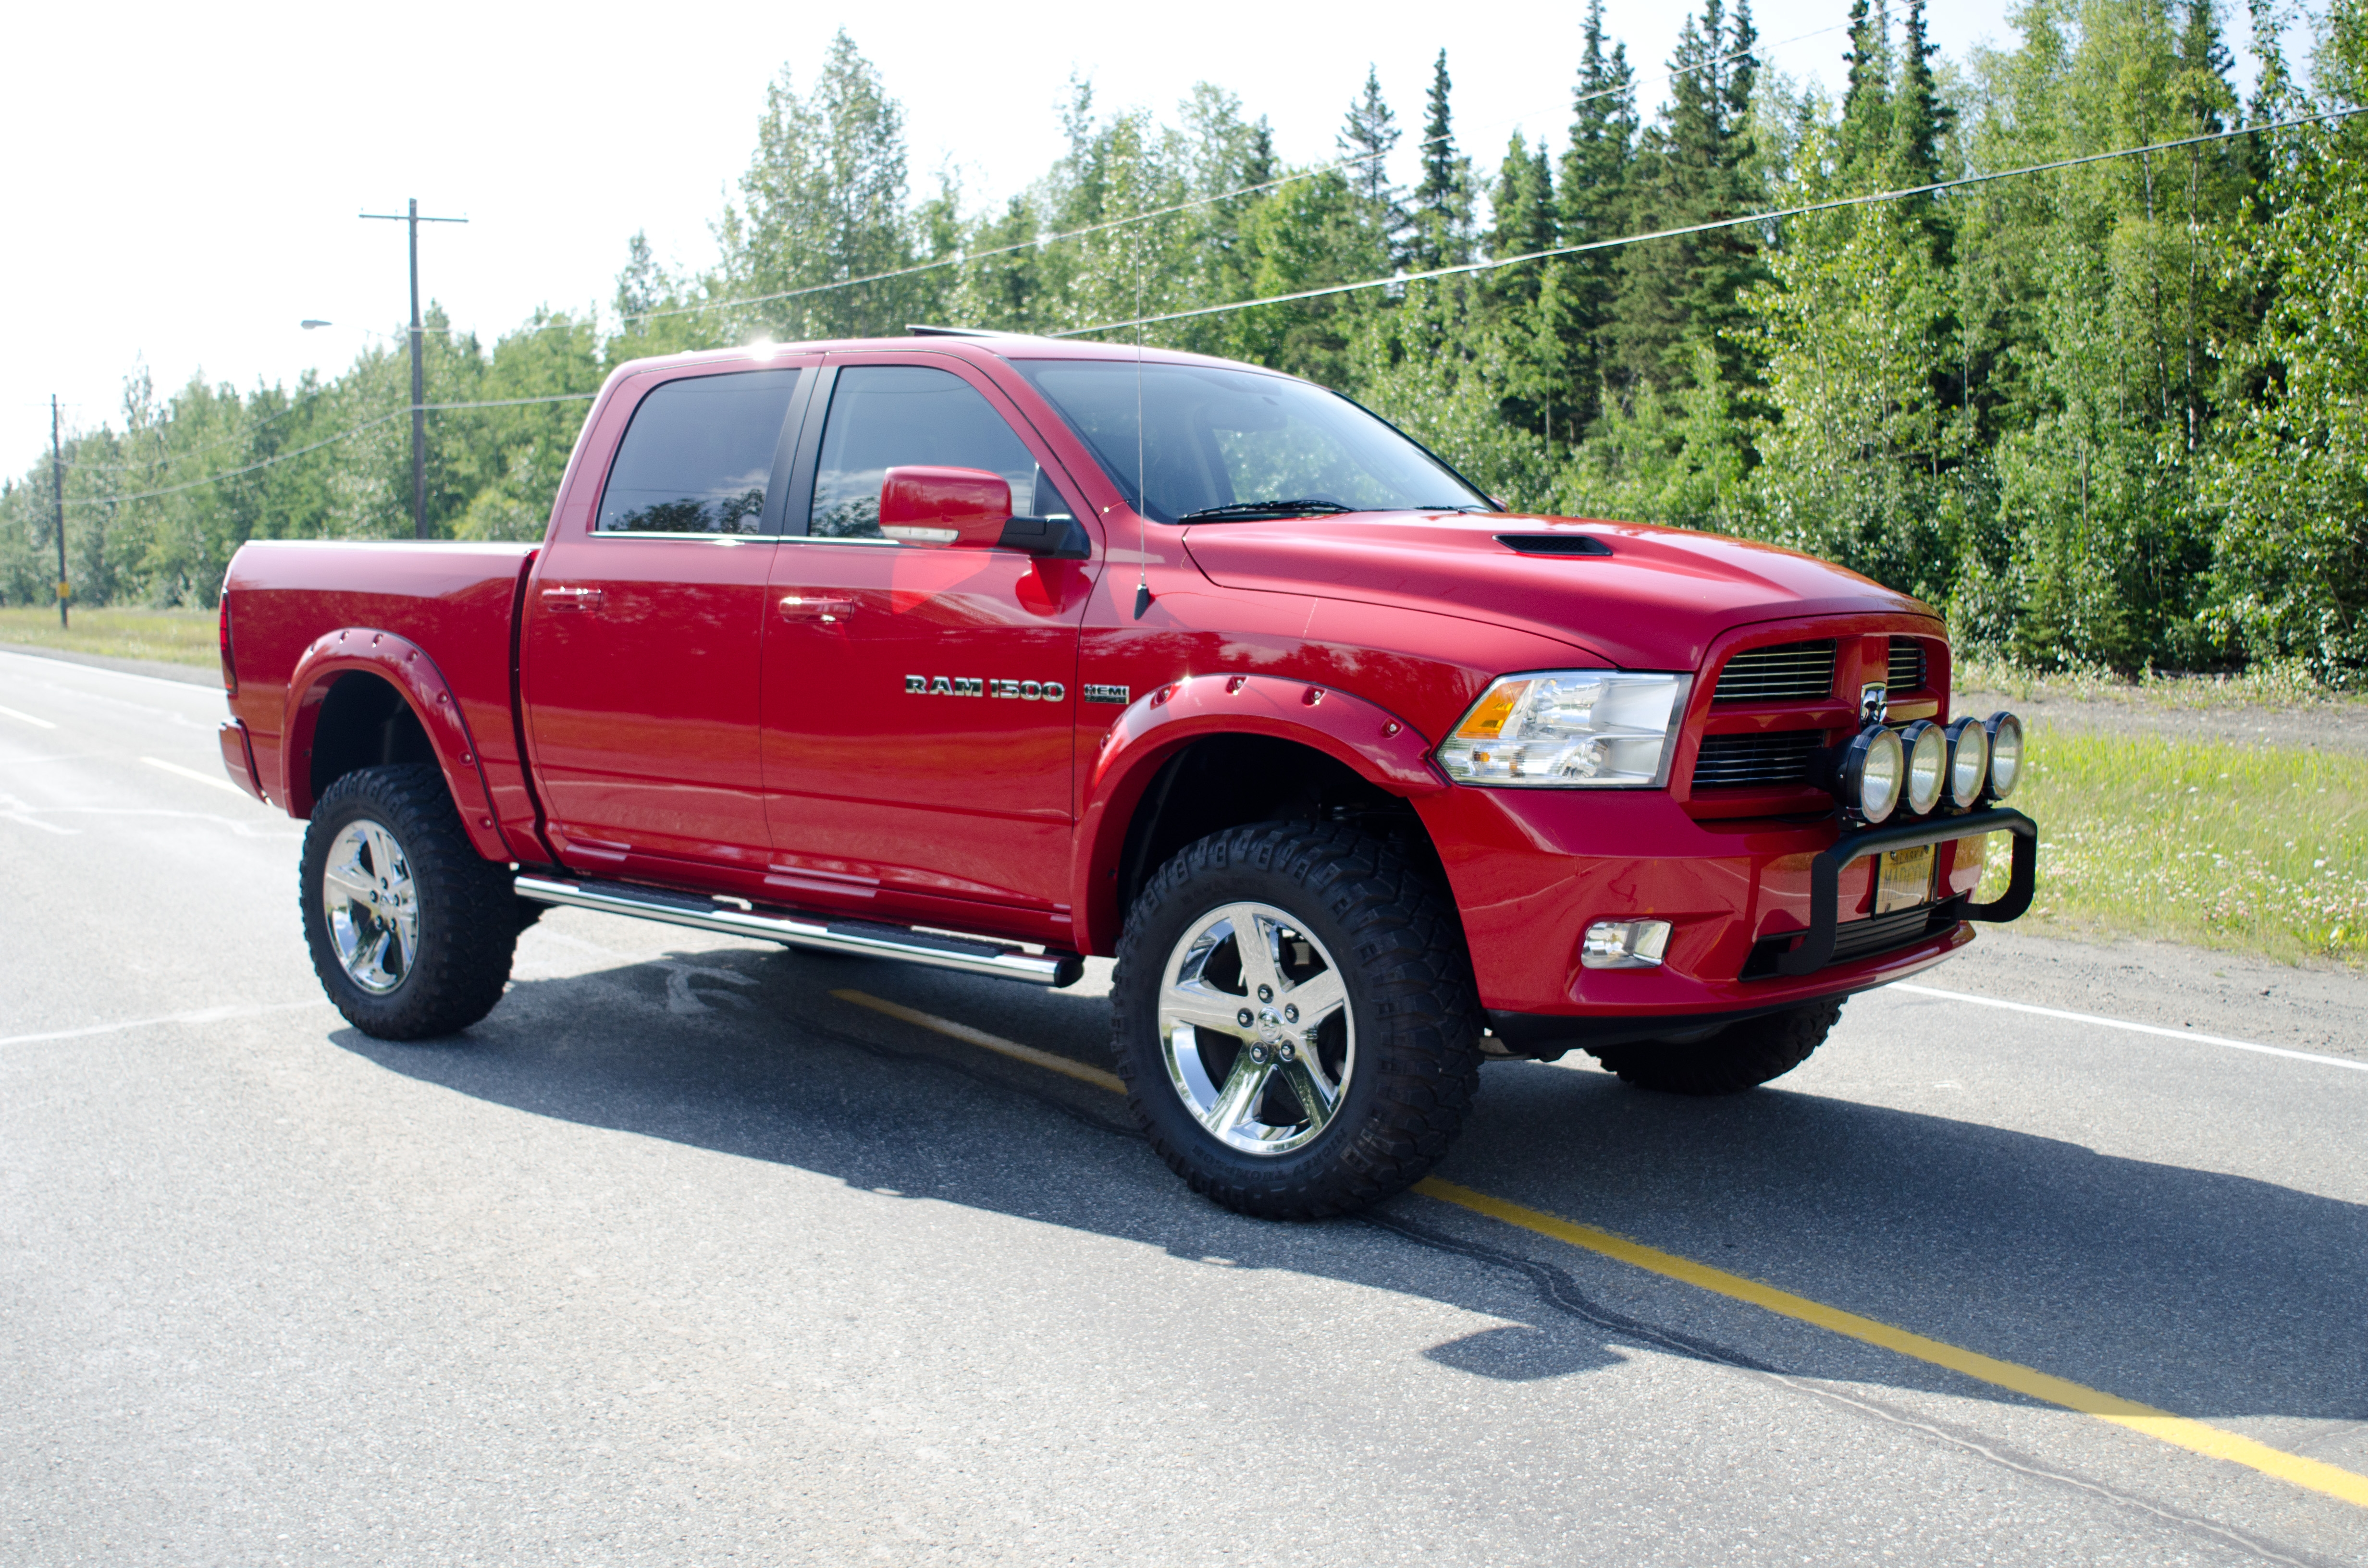 madcowiii 2011 dodge ram 1500 crew cab specs photos modification info at cardomain. Black Bedroom Furniture Sets. Home Design Ideas